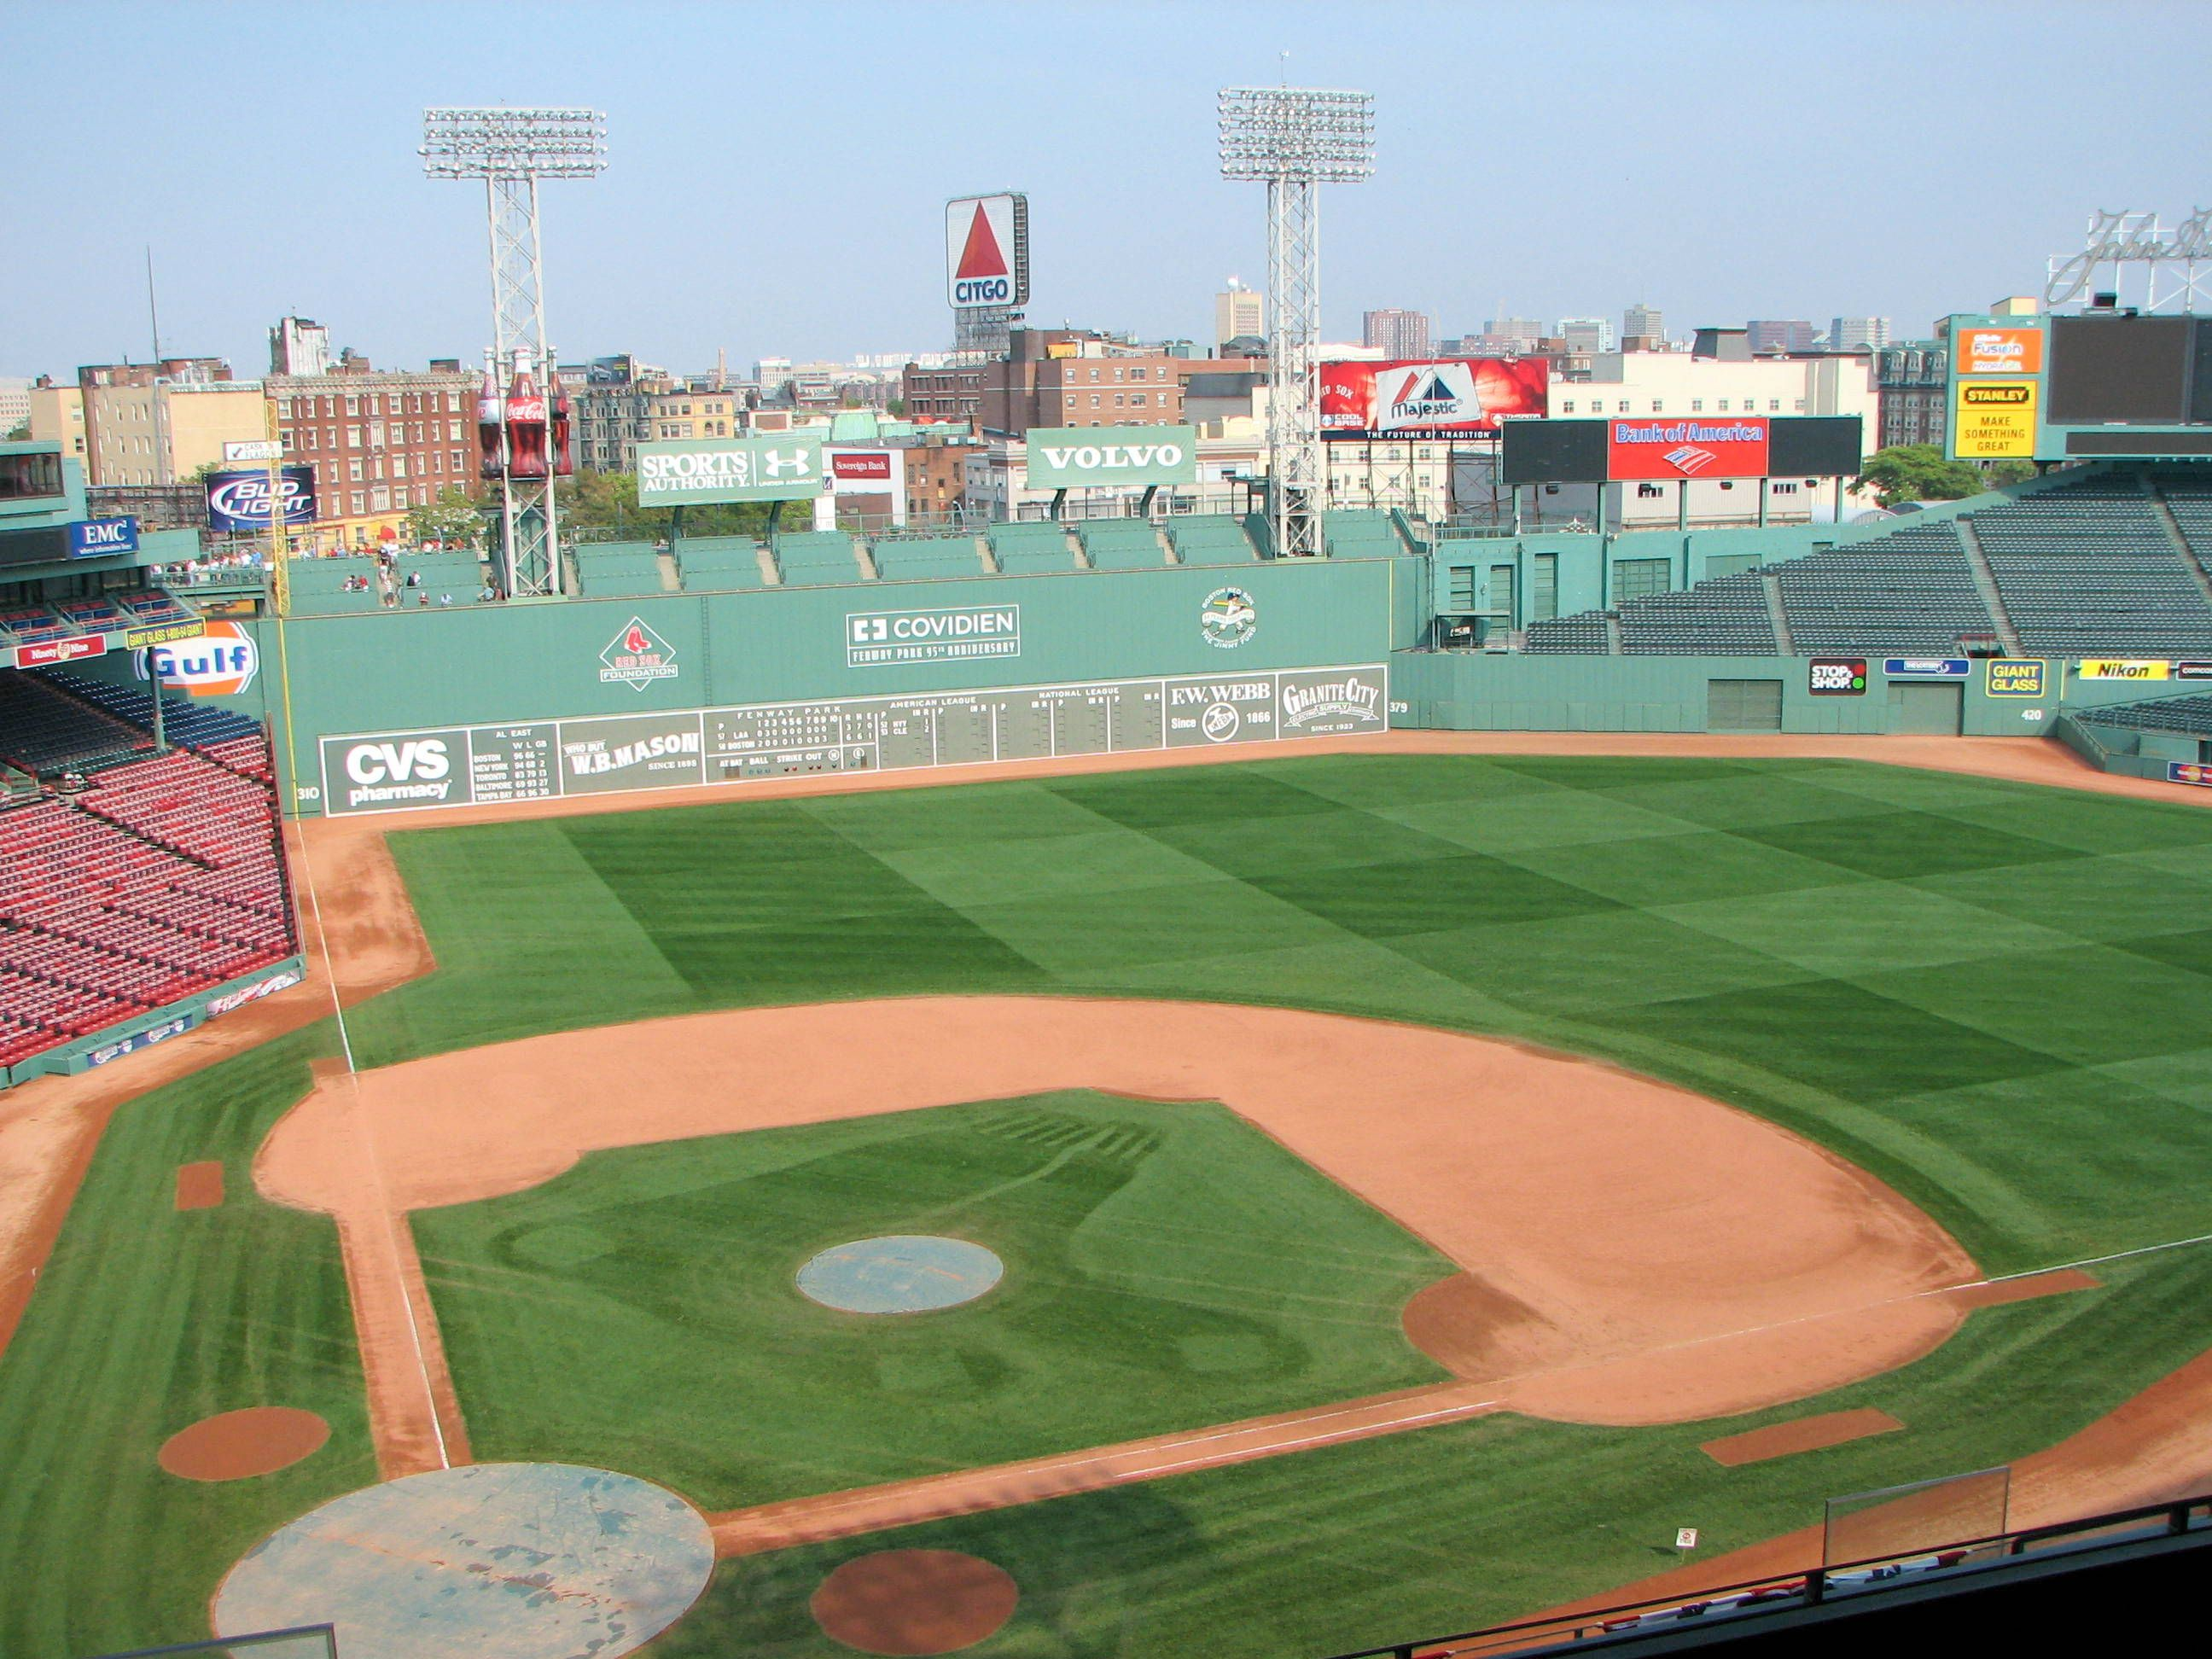 Boston Red Sox Fenway Park Boston Ma Classic Americana Old School With Great Character A Must See Fenway Park Boston Vacation Fenway Park Boston